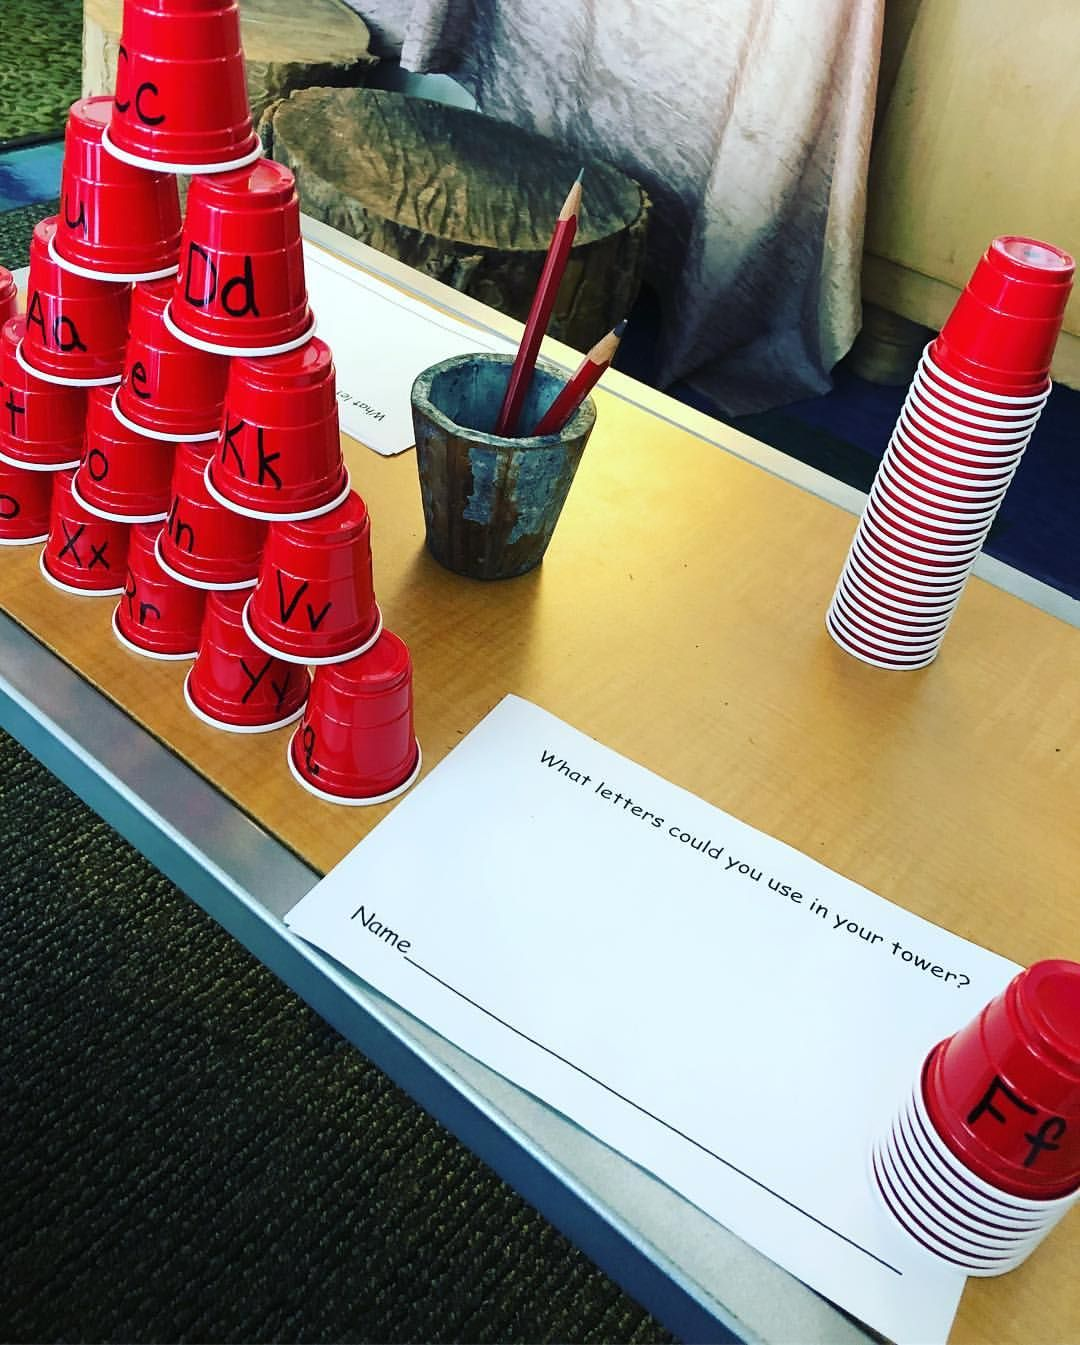 How to play letter stackit you take a cup off the pile